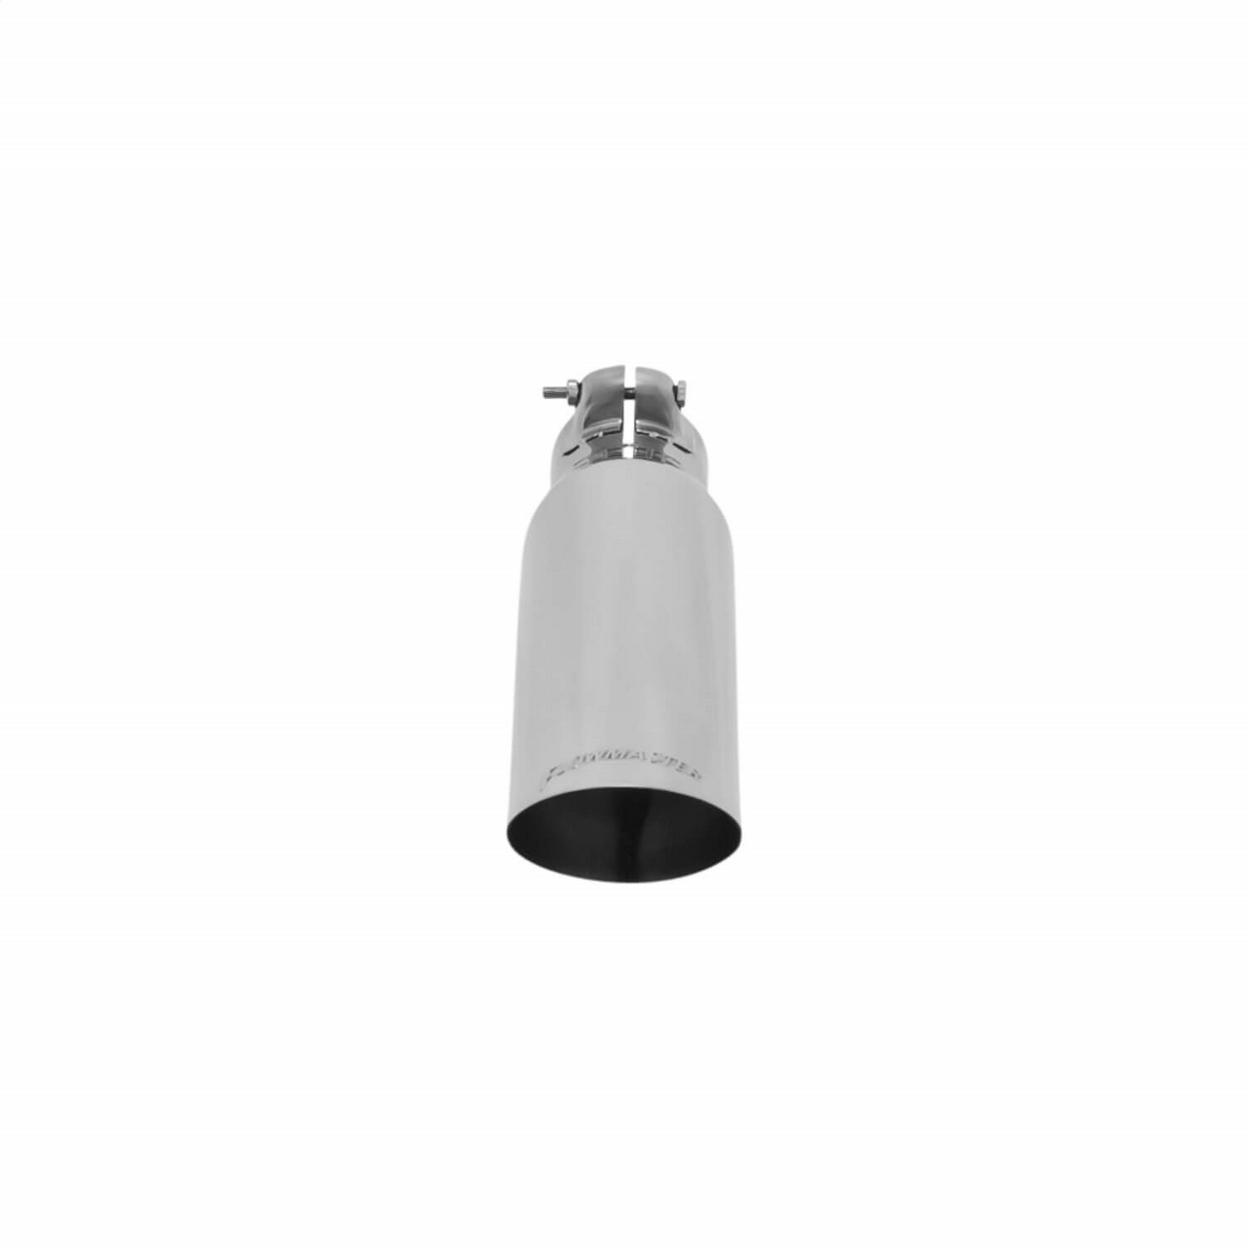 Exhaust Tip - 3.00 in. Angle Cut Polished SS Fits 2.25 in. Tubing - Clamp on